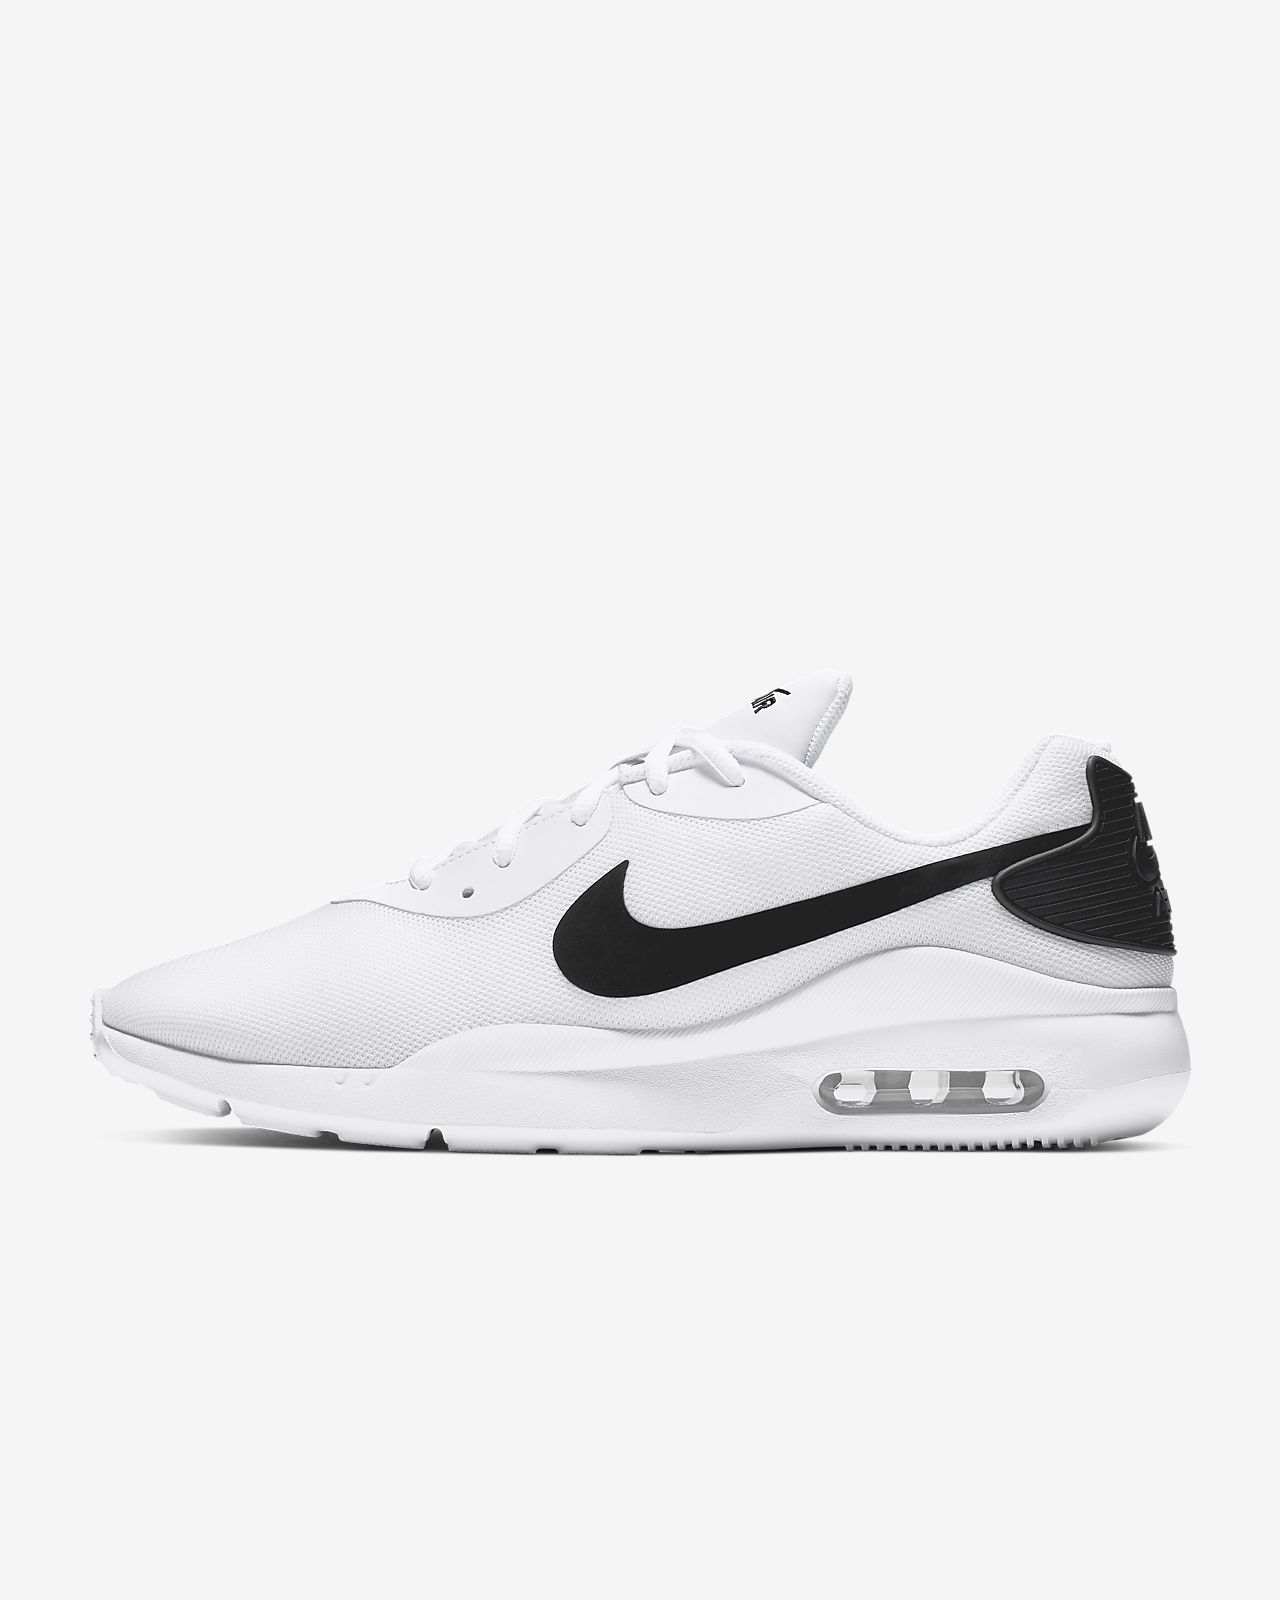 8440d9dd4dba Nike Air Max Oketo Men s Shoe. Nike.com